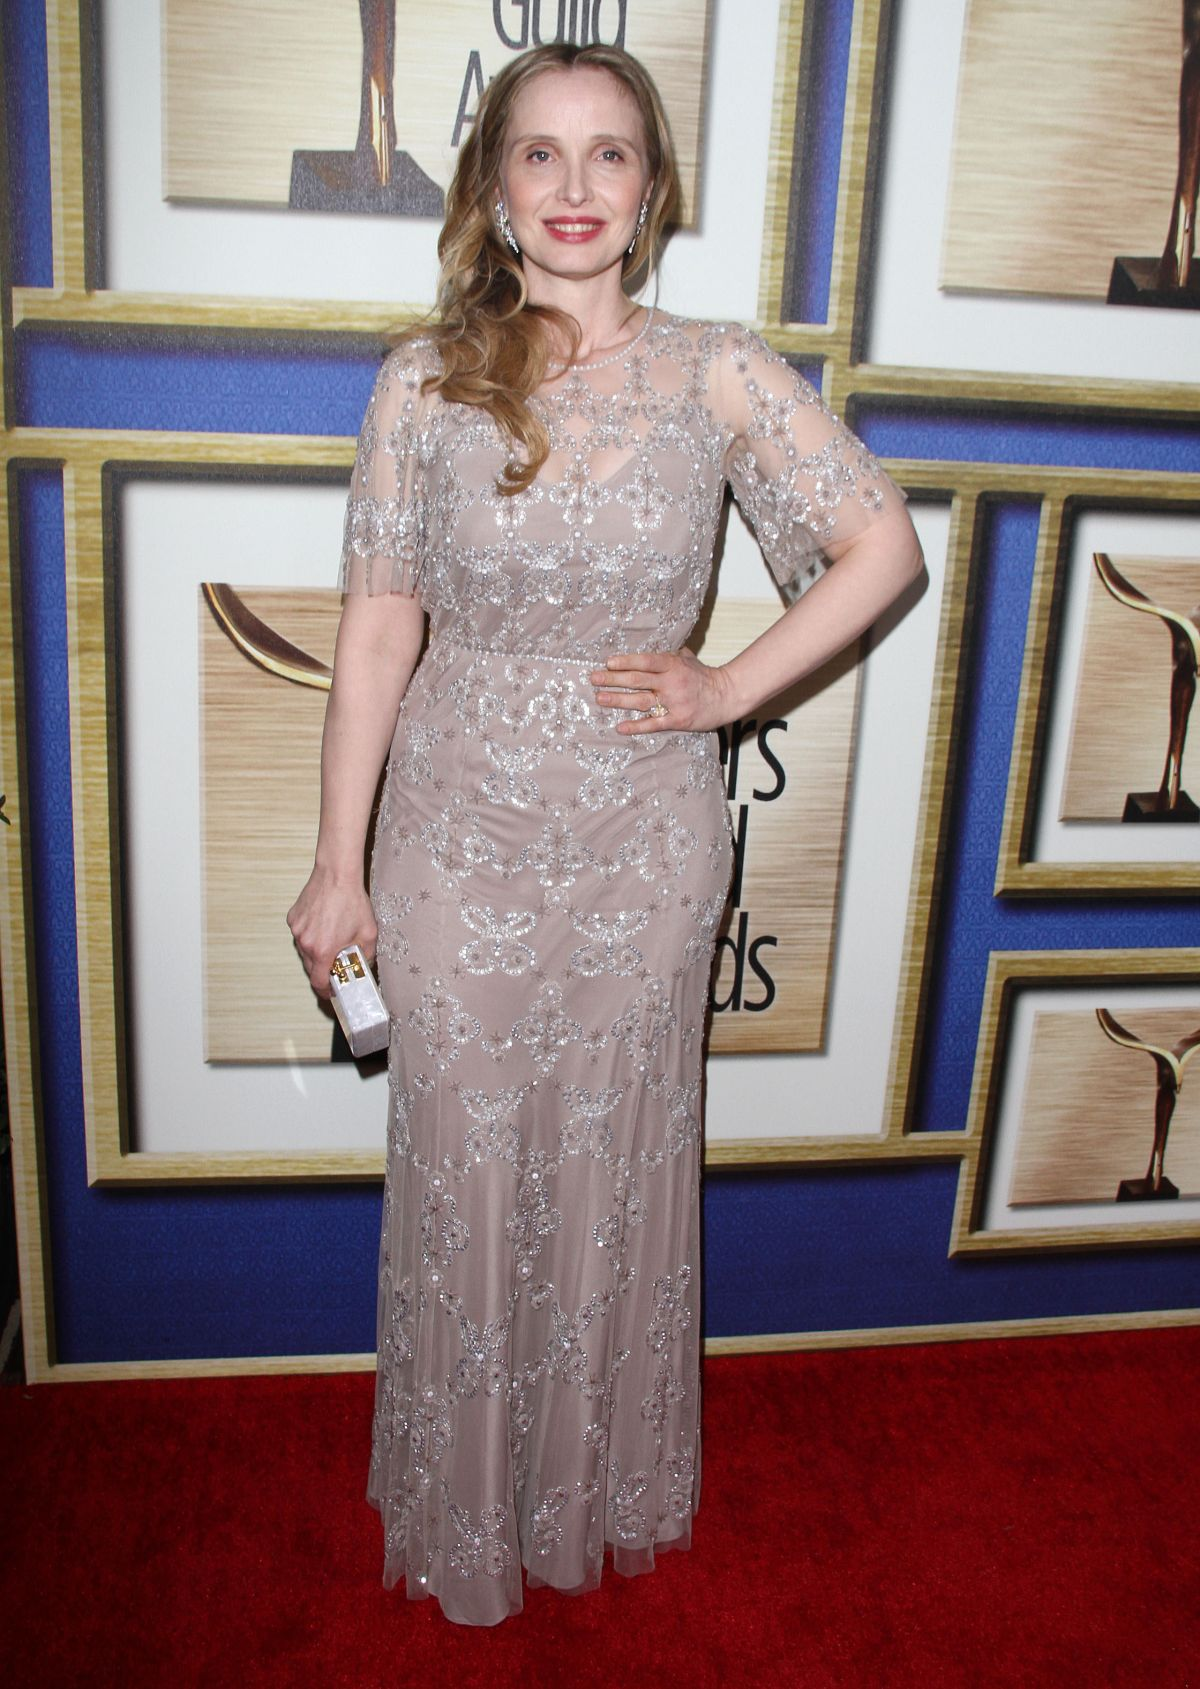 JULIE DELPY at 2014 Writers Guild Awards in New York